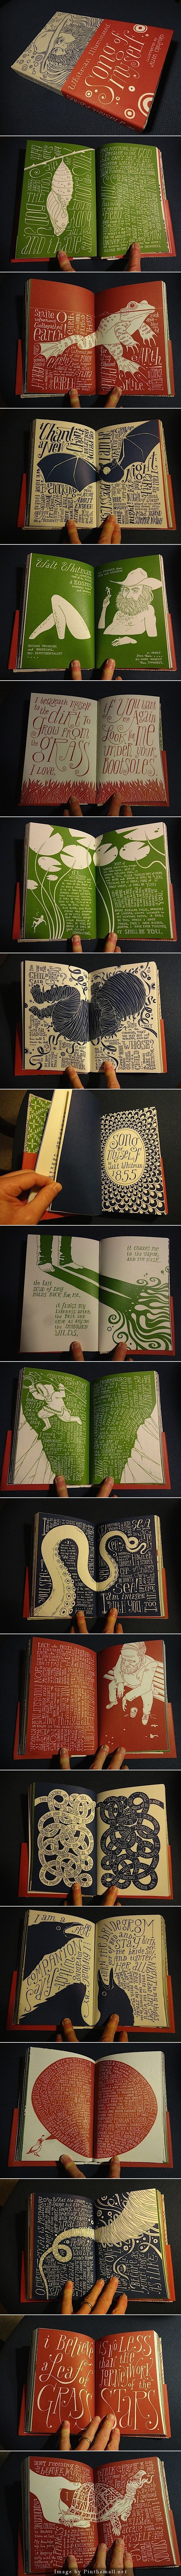 ✍ Sensual Calligraphy Scripts ✍ initials, typography styles and calligraphic art - Hand Illustrated Book by Allen Crawford: